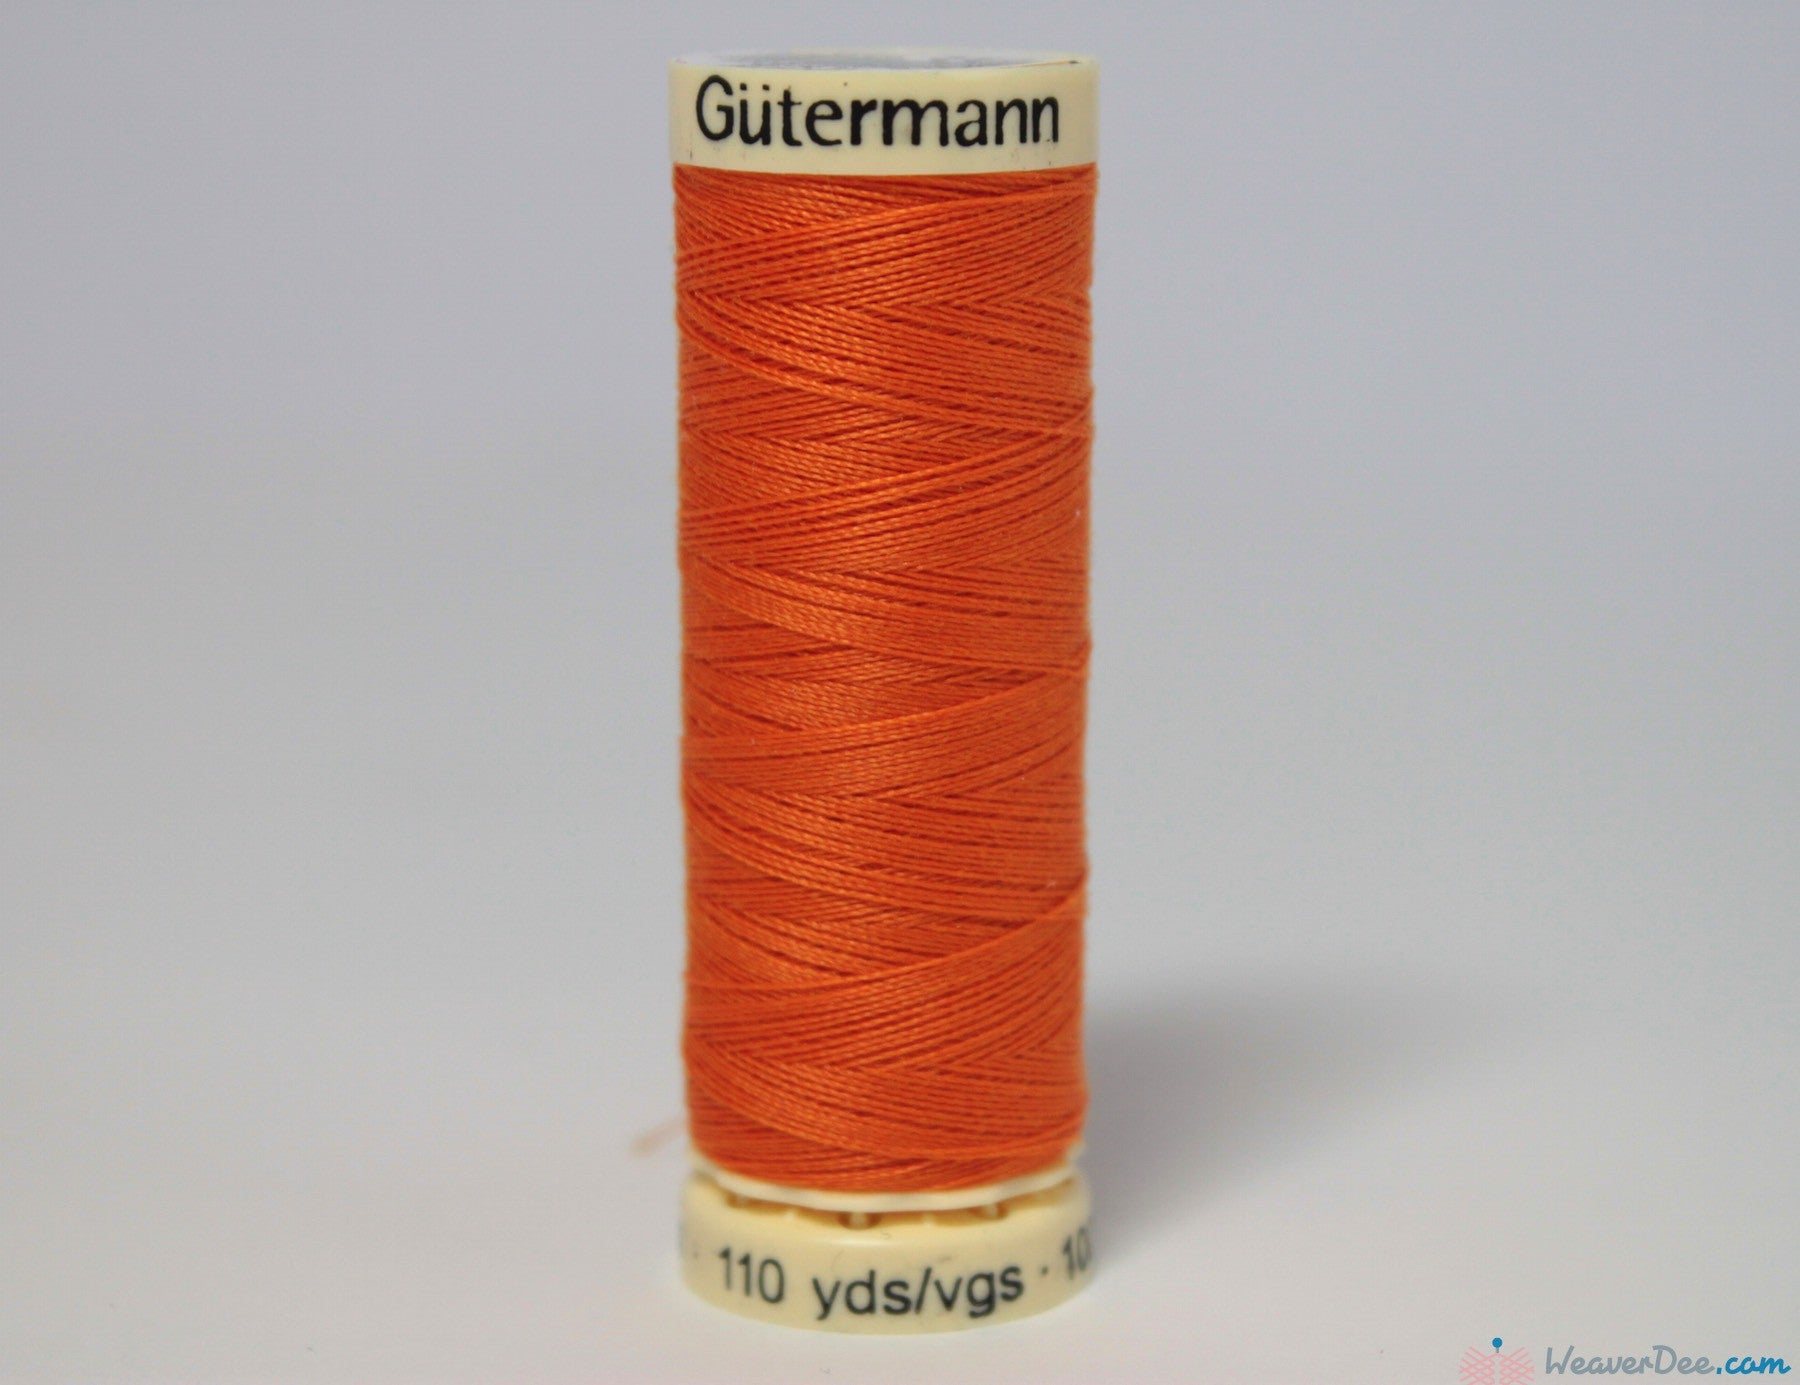 Gütermann - Sew-All Polyester Sewing Thread [350 Orange] - WeaverDee.com Sewing & Crafts - 1